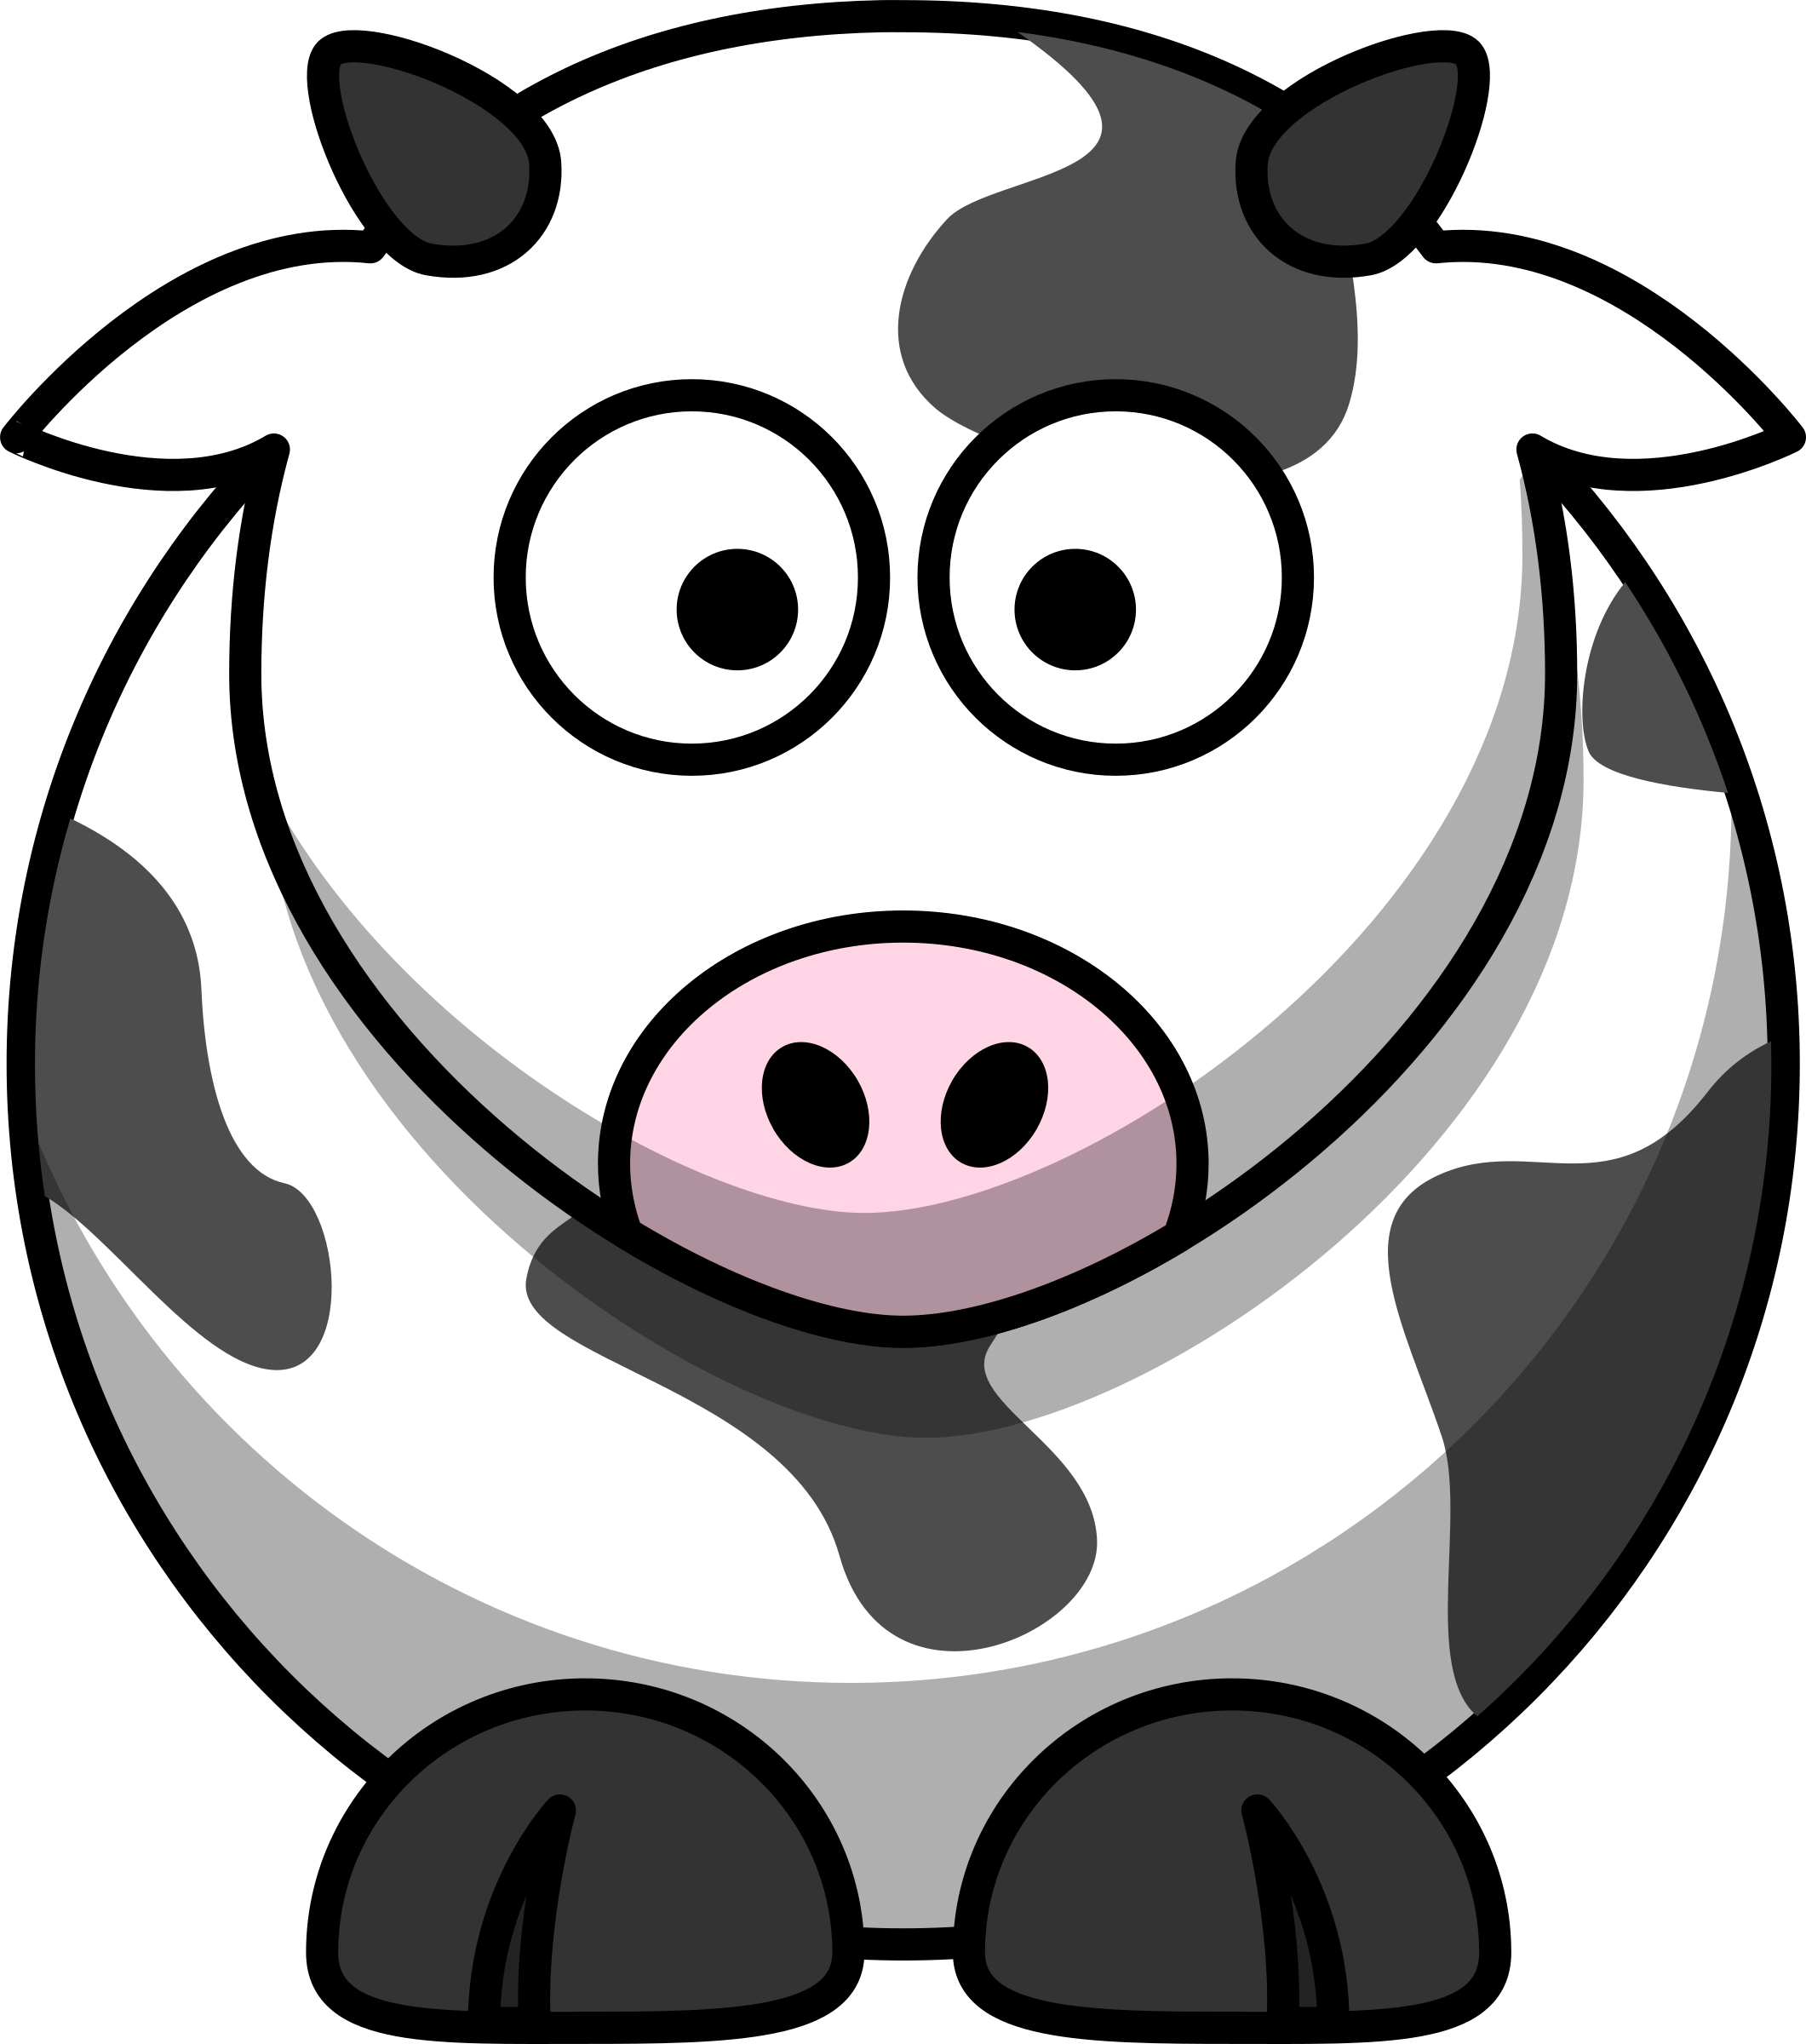 Clipart big image png. Cow clip art cartoon banner royalty free download